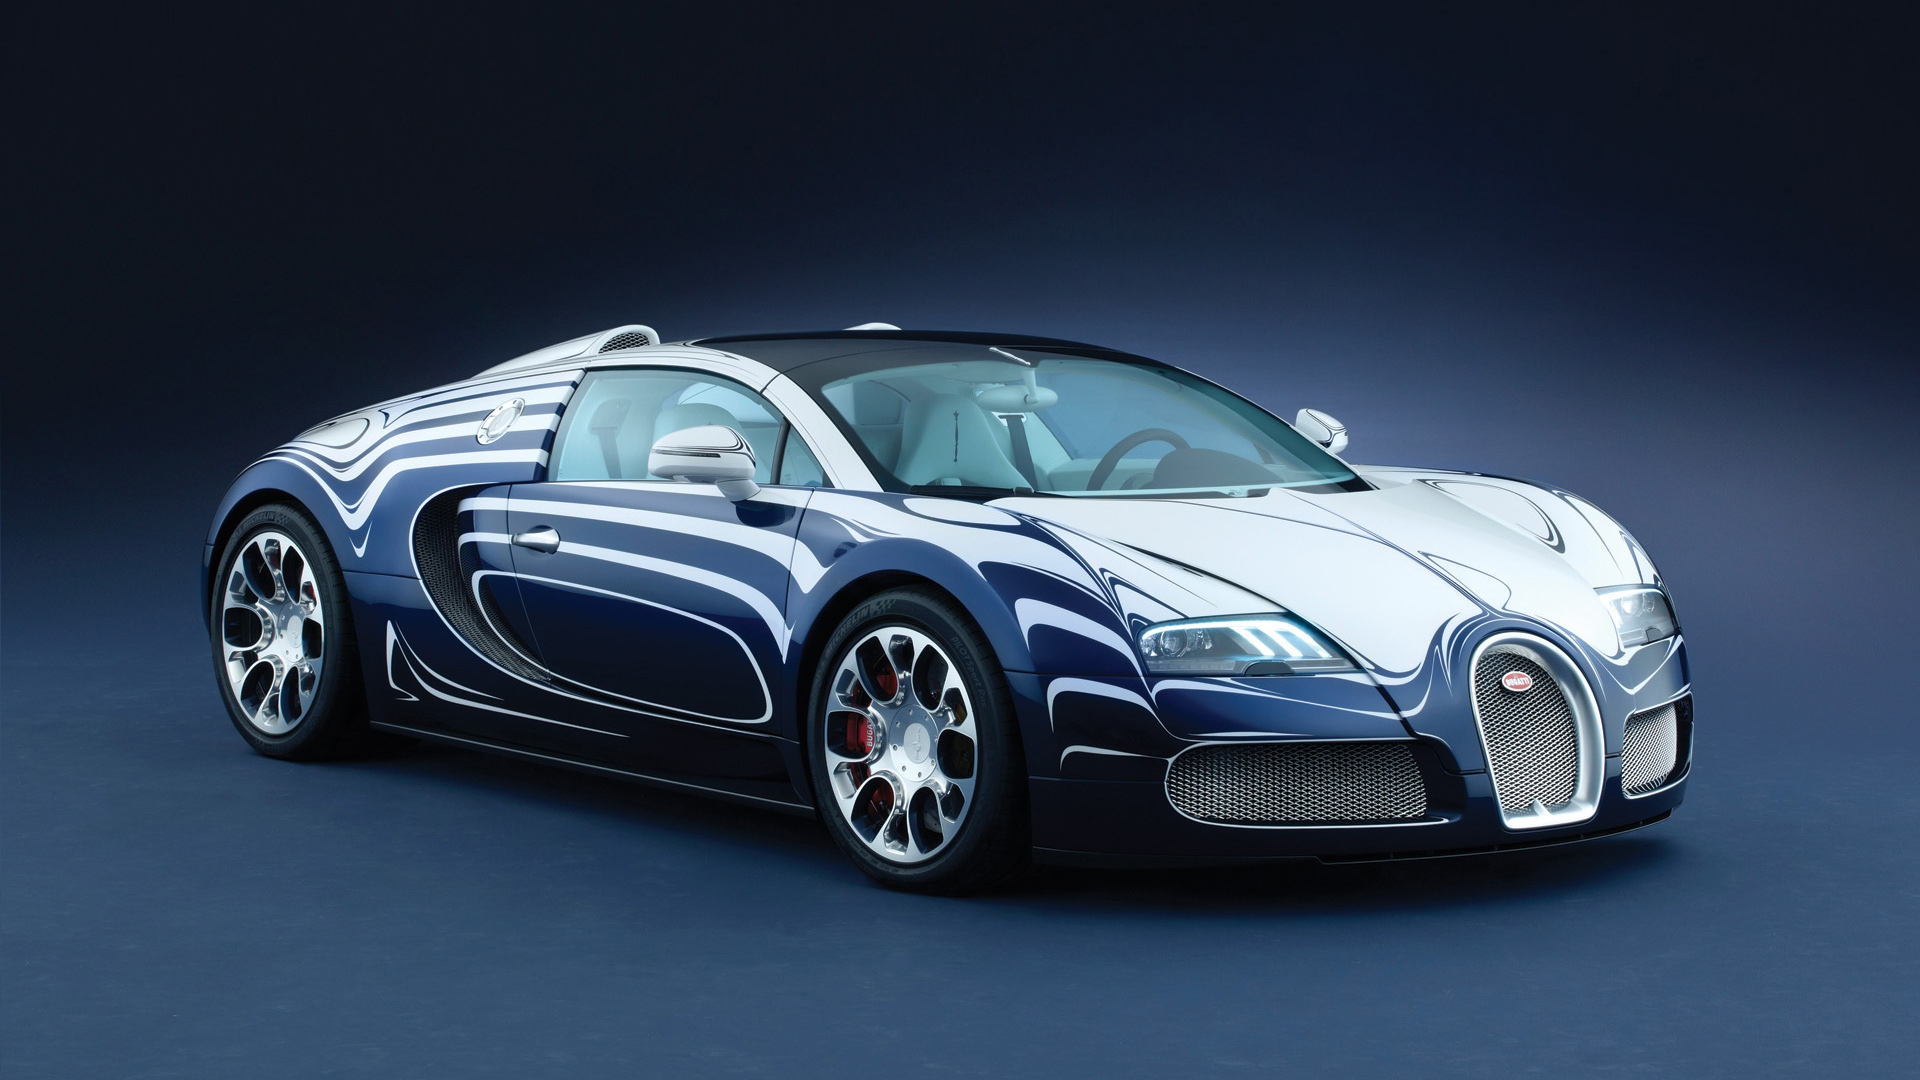 Bugatti Wallpapers For Desktop Wallpapersafari